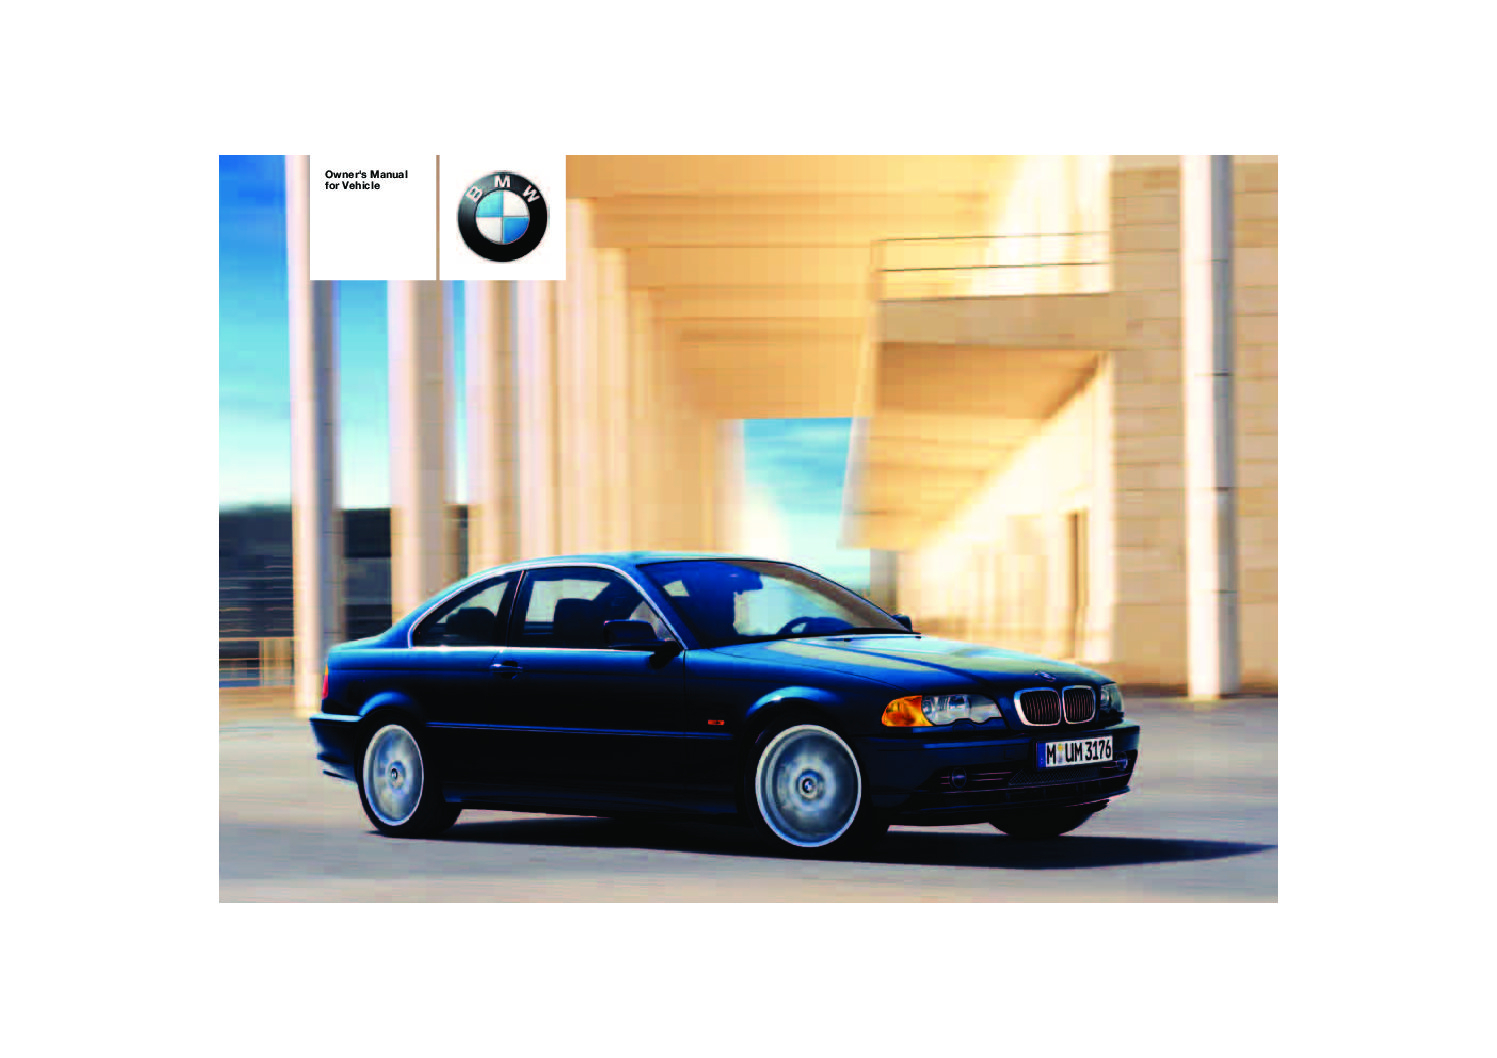 2004 bmw 325ci-330ci Owners Manual | Just Give Me The Damn ...